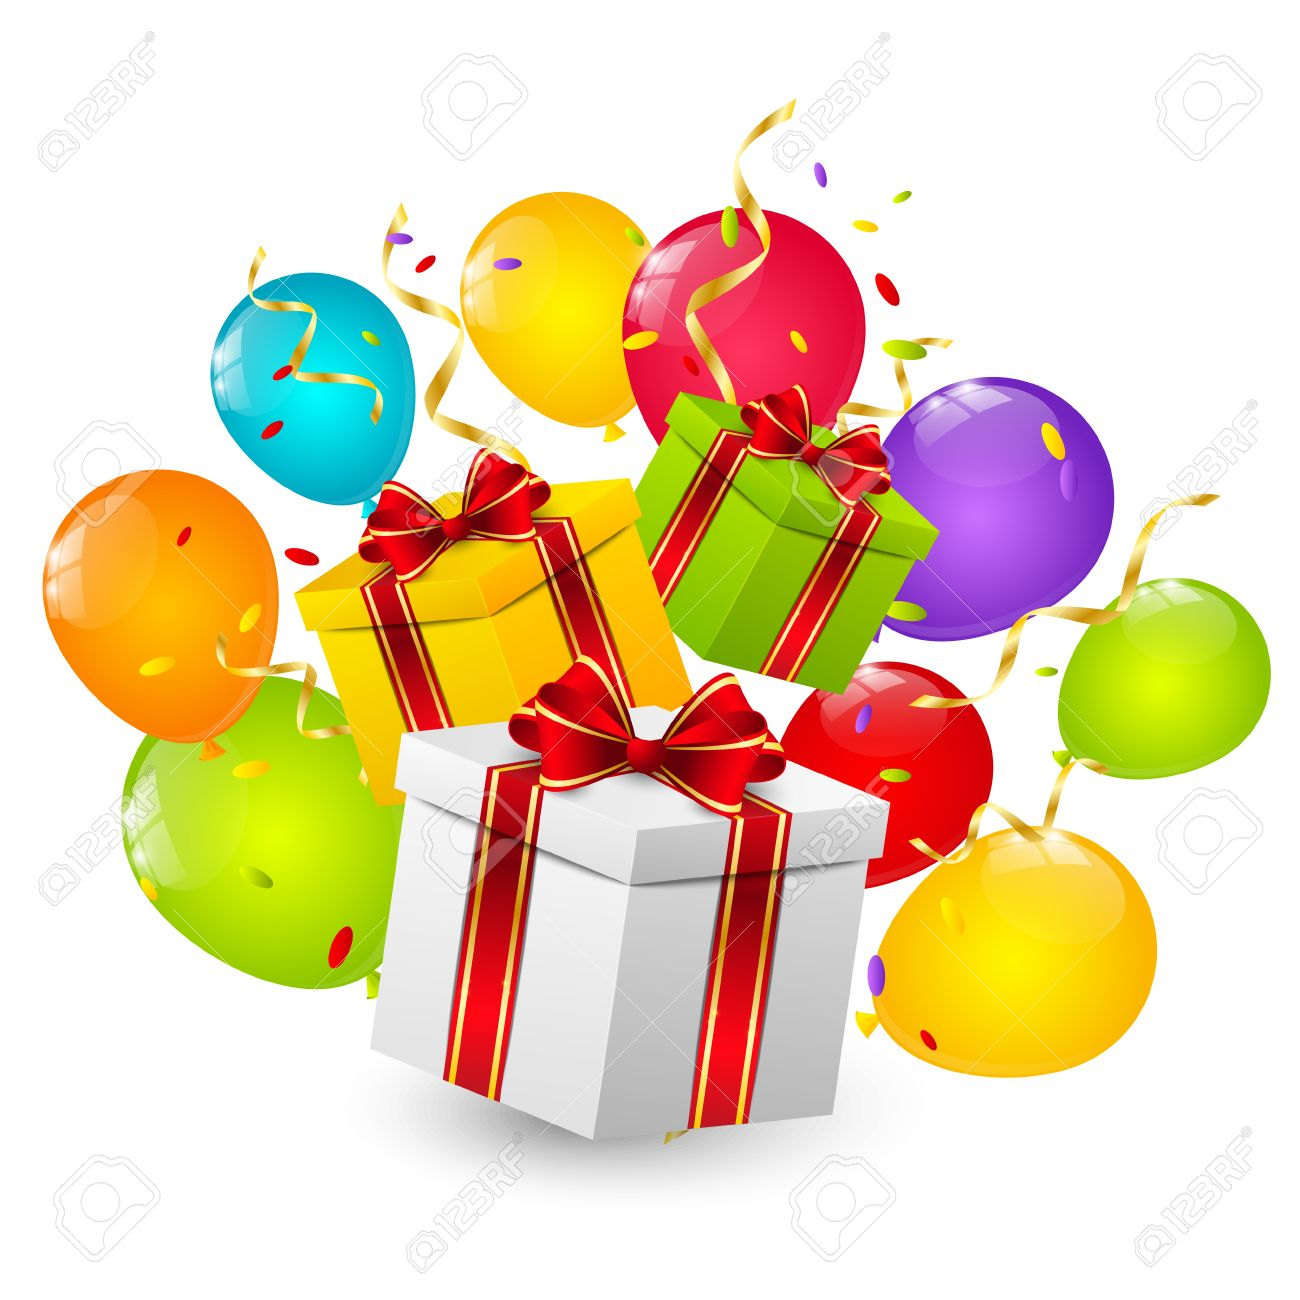 Birthday Gift Boxes Royalty Free Cliparts, Vectors, And Stock ...